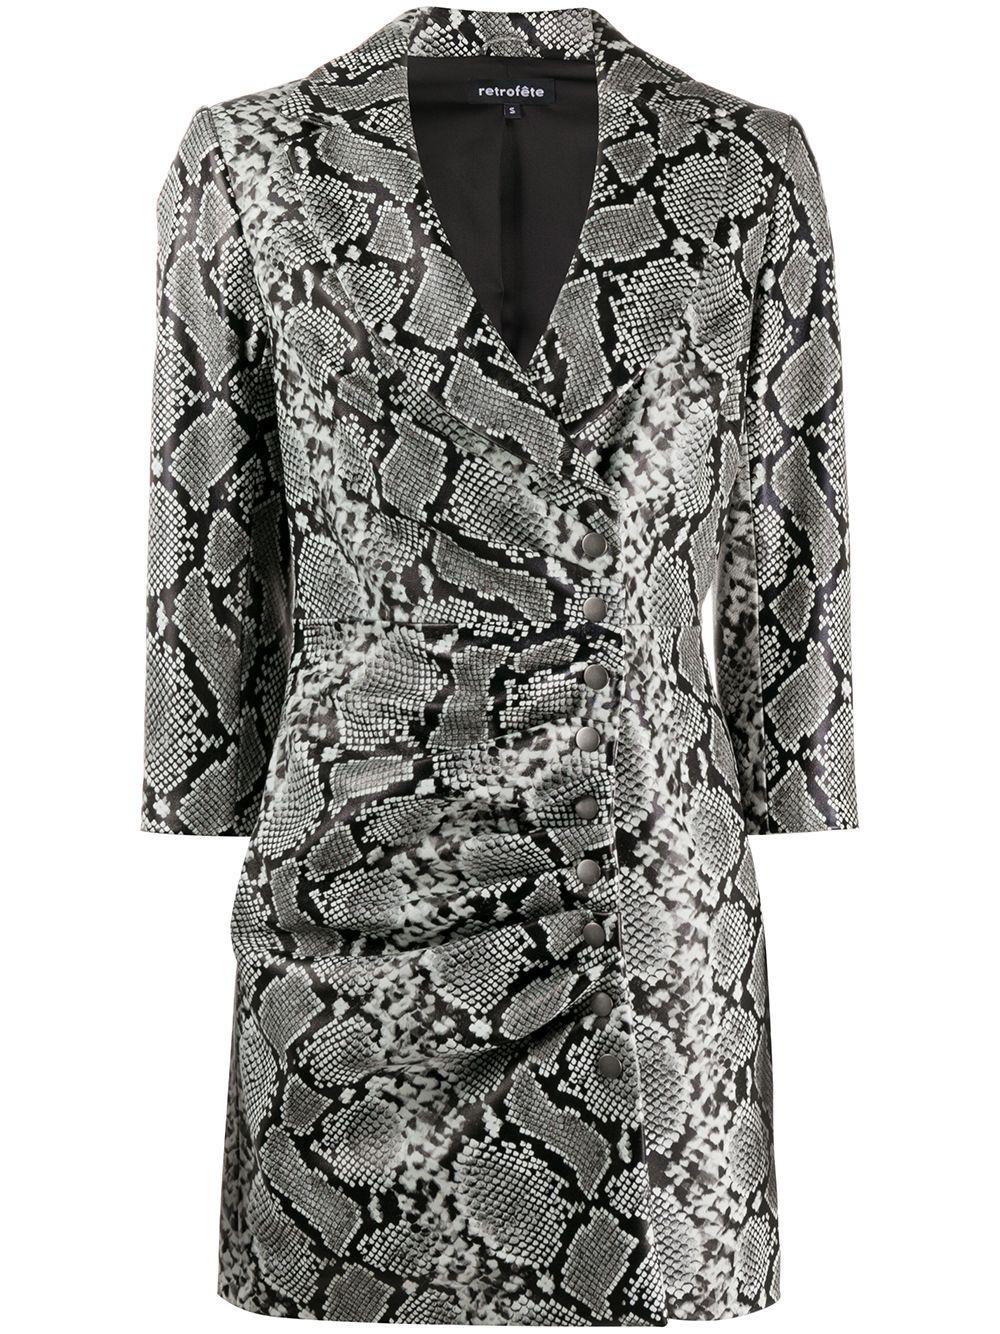 Willa 3/4 Sleeve Snakeskin Dress Item # HL20-2108